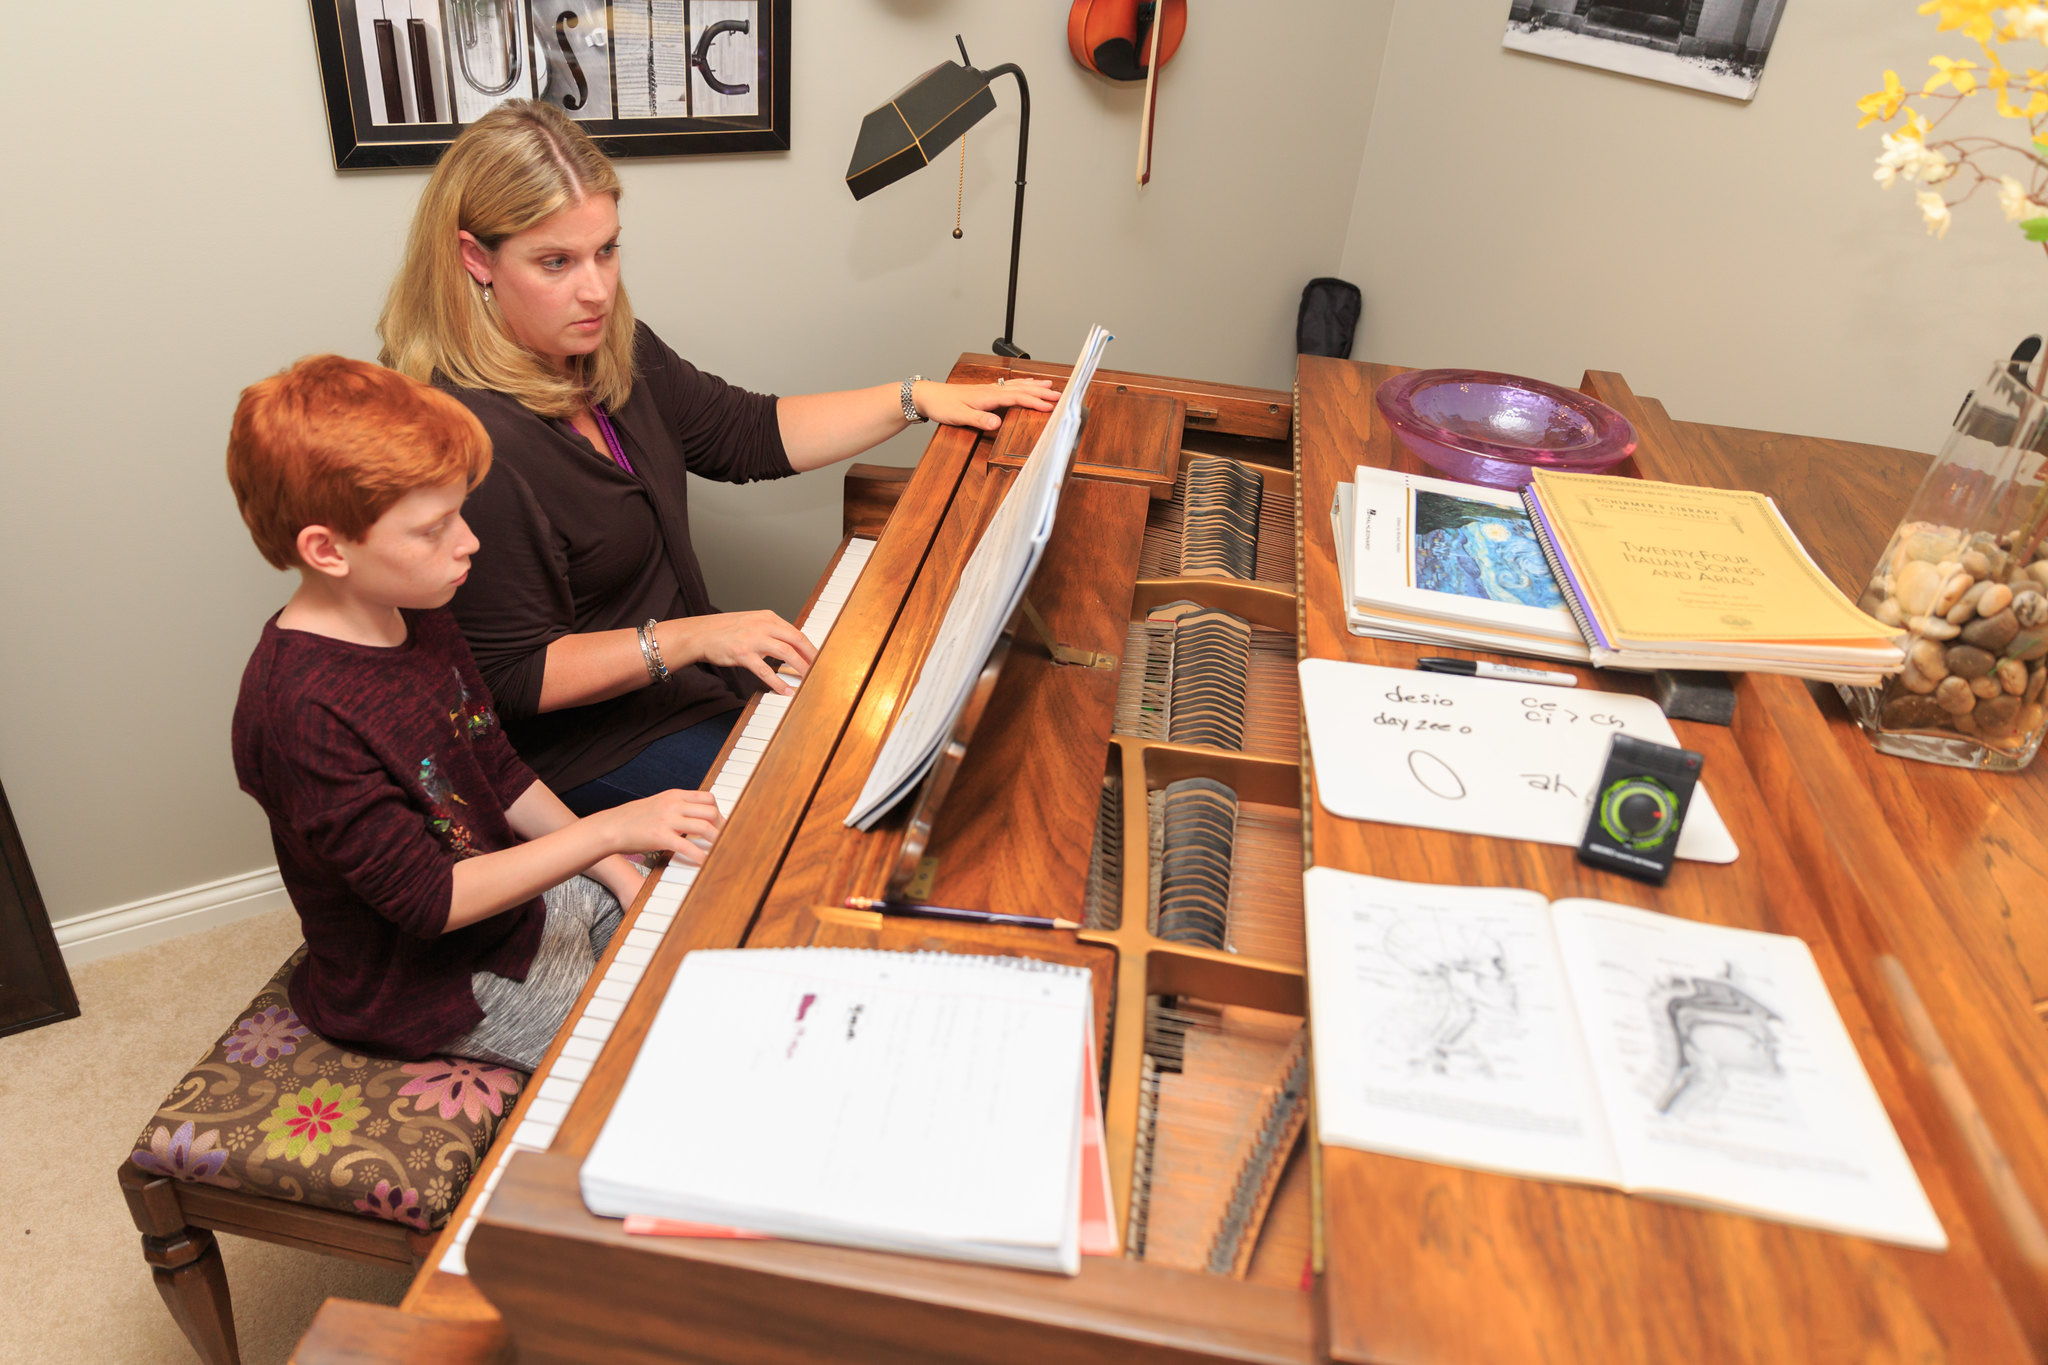 Piano Lessons with teacher, Sarah Bucher